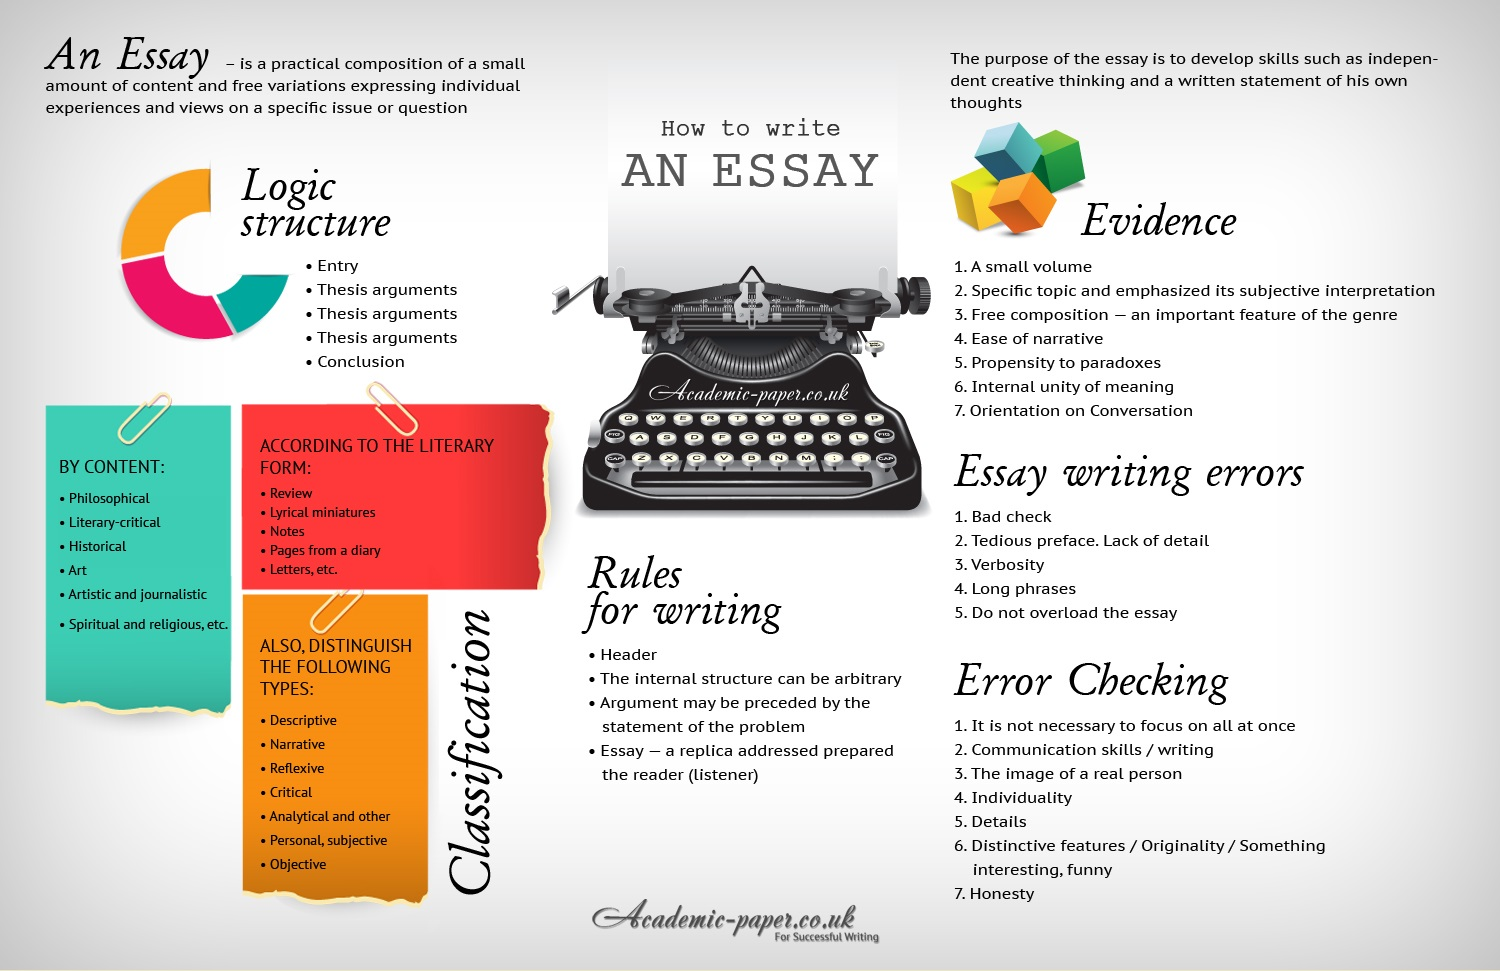 writes essay for you writes essay for you stampangroup atilde acirc frac atilde acirc micro atilde atilde sbquo atilde acirc frac  how to write an essay academic paper blogthe essay structure is the same but it is